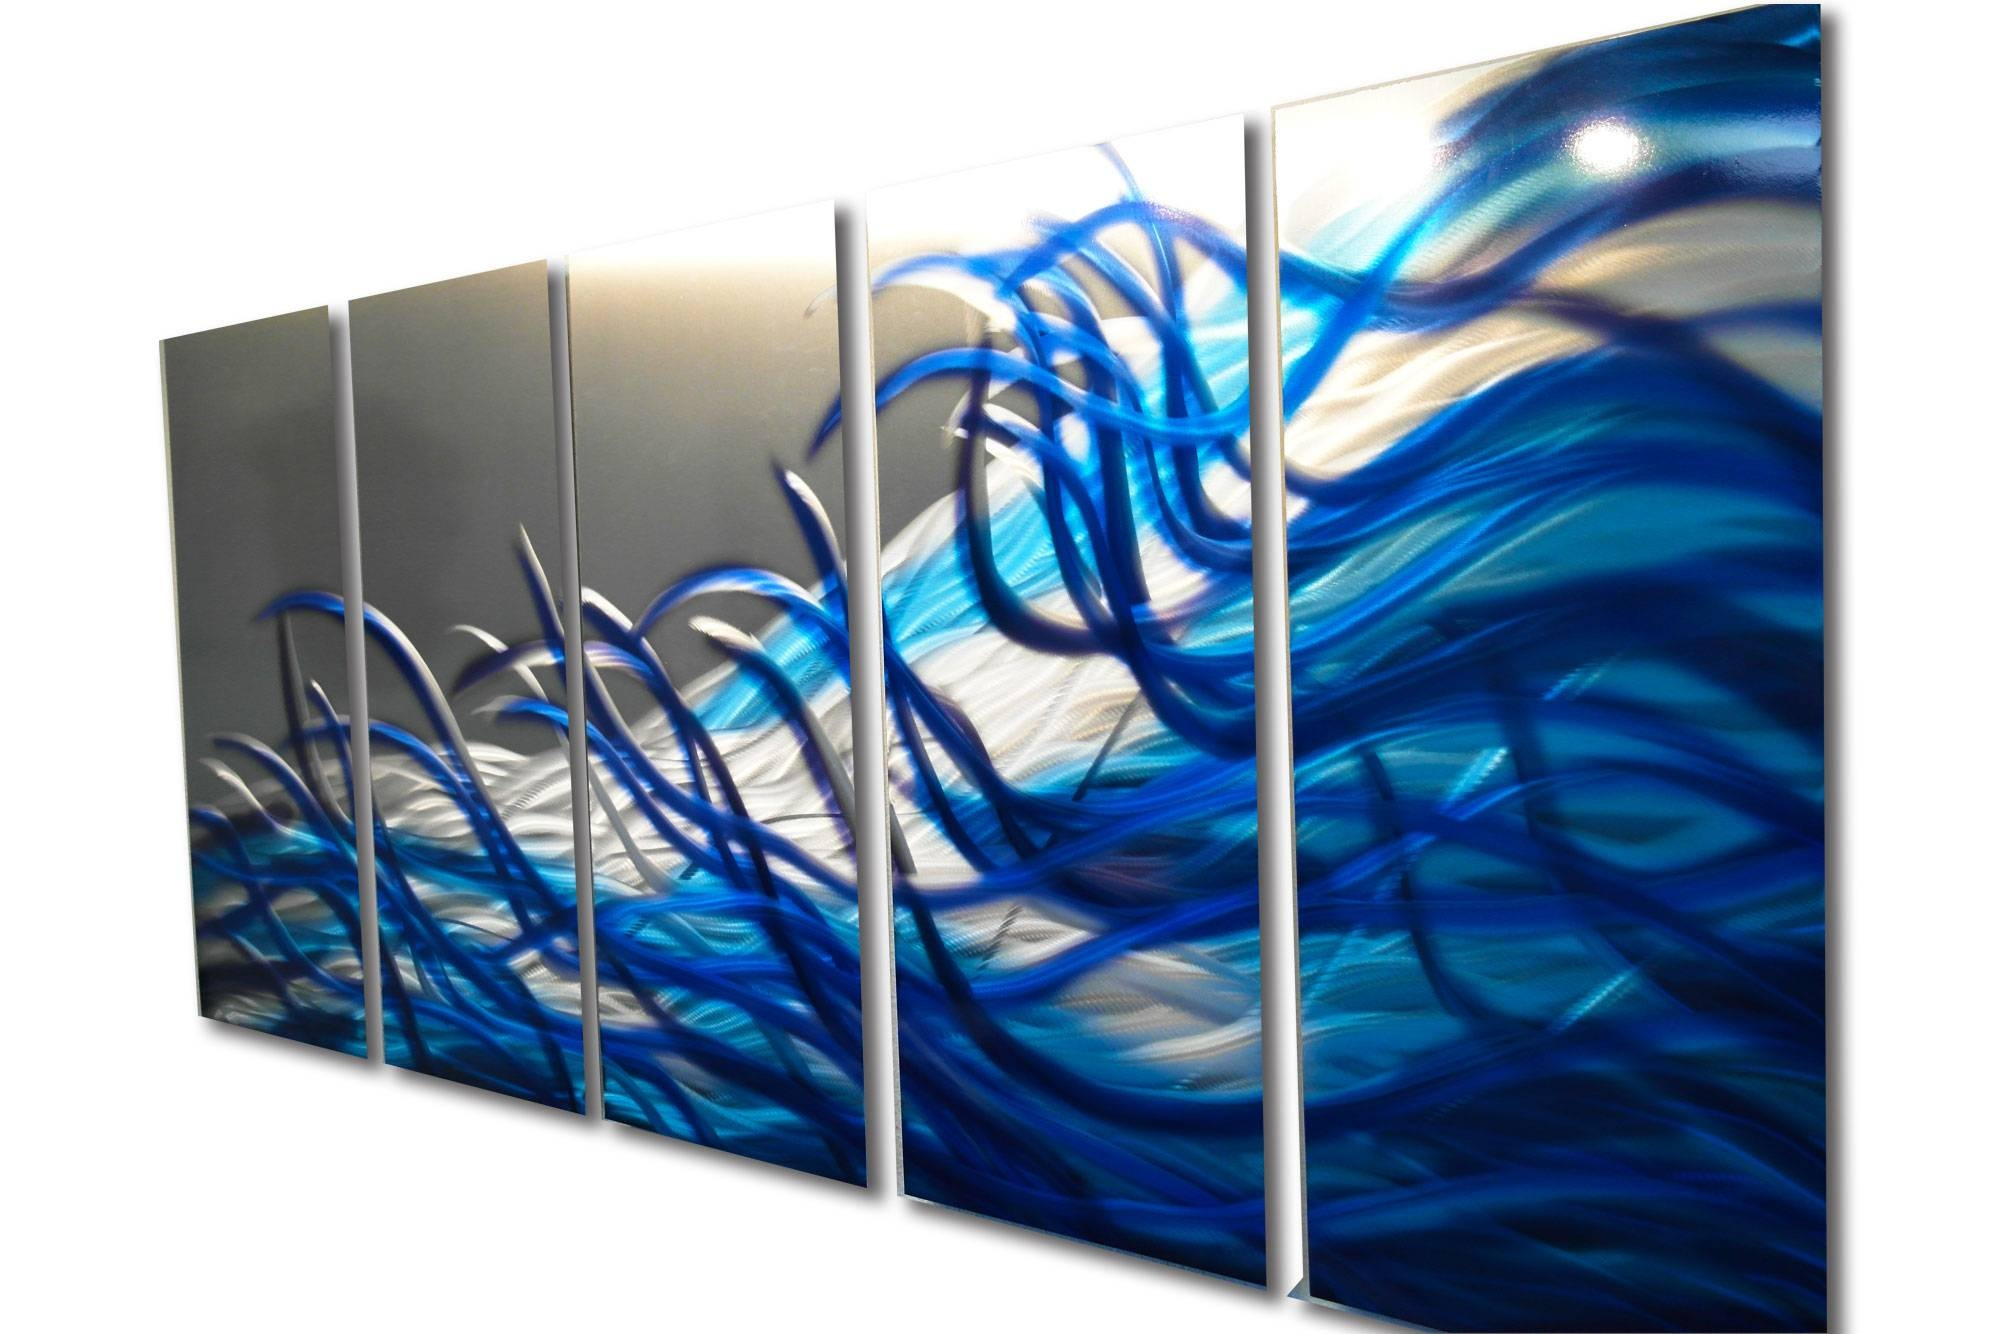 Resonance Blue 36X79 Metal Wall Art Contemporary Modern Decor In Most Up To Date Blue Metal Wall Art (View 2 of 20)